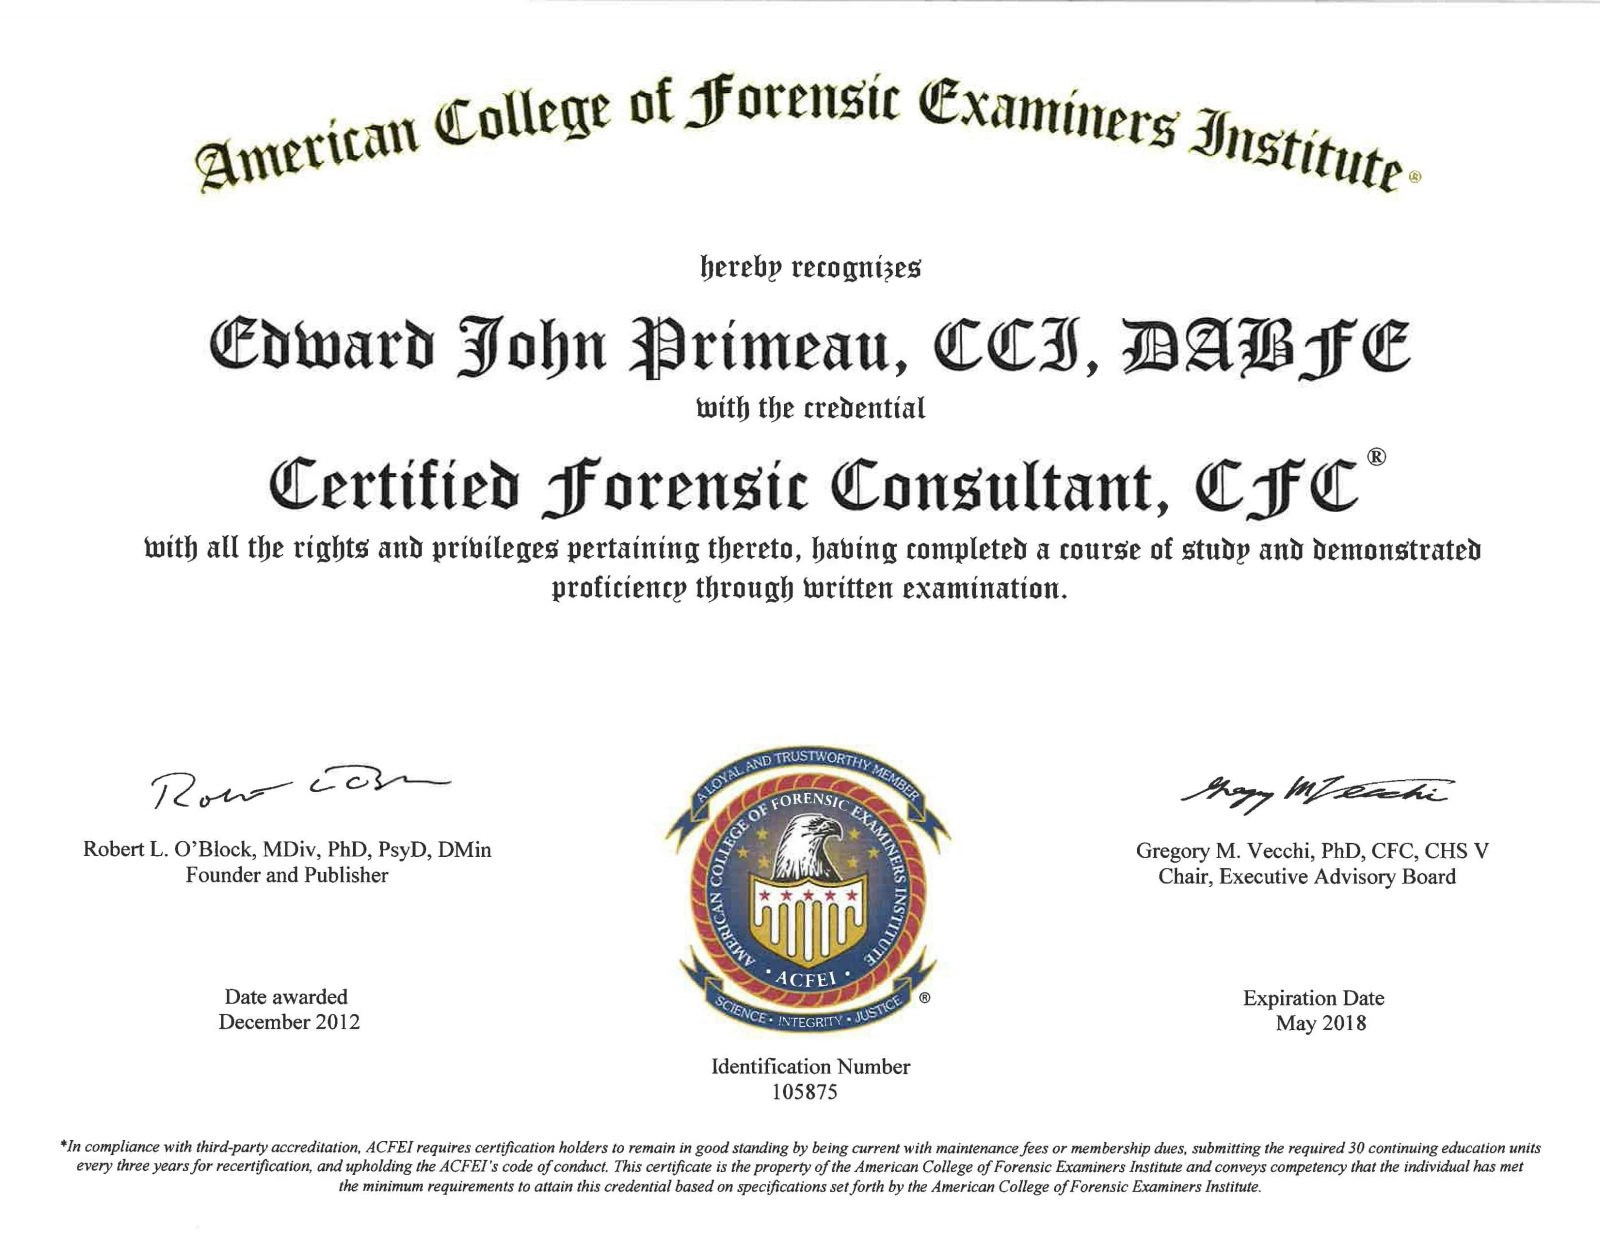 forensic expert certifications and training certified forensic consultant acfei